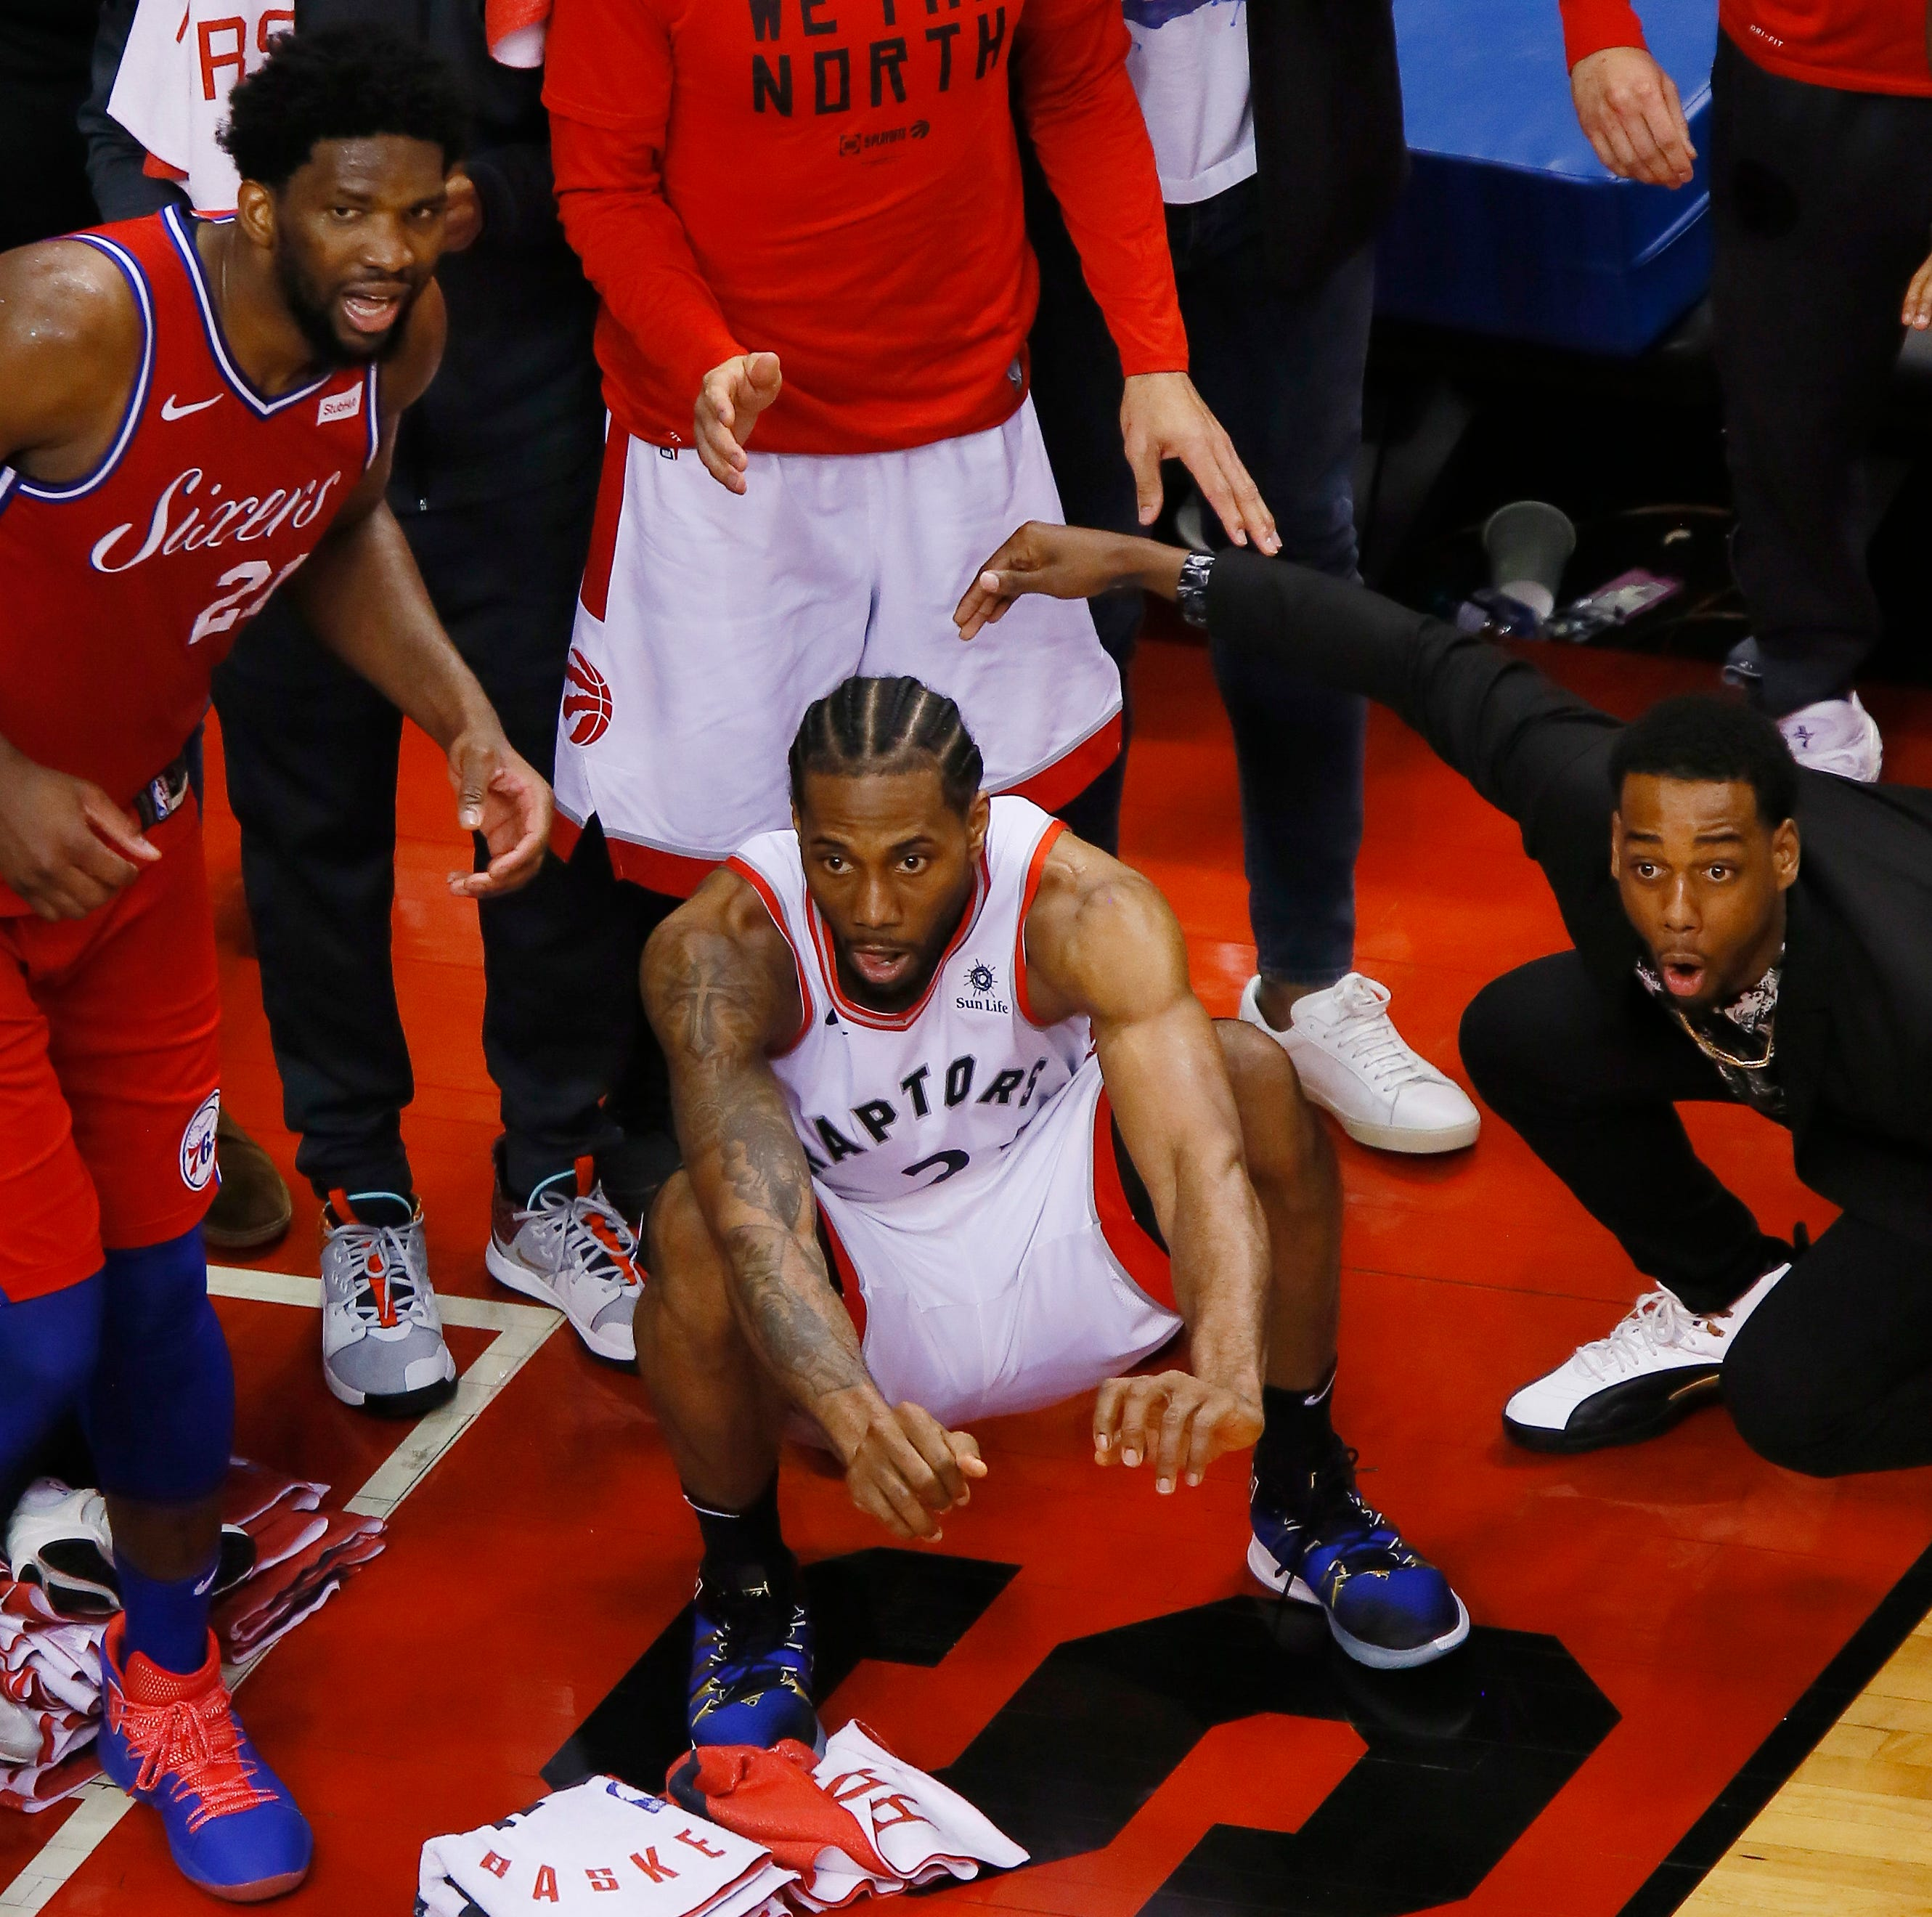 Kawhi Leonard's shot. That amazing photo. Former UIndy star Jordan Loyd is right in the thick of it